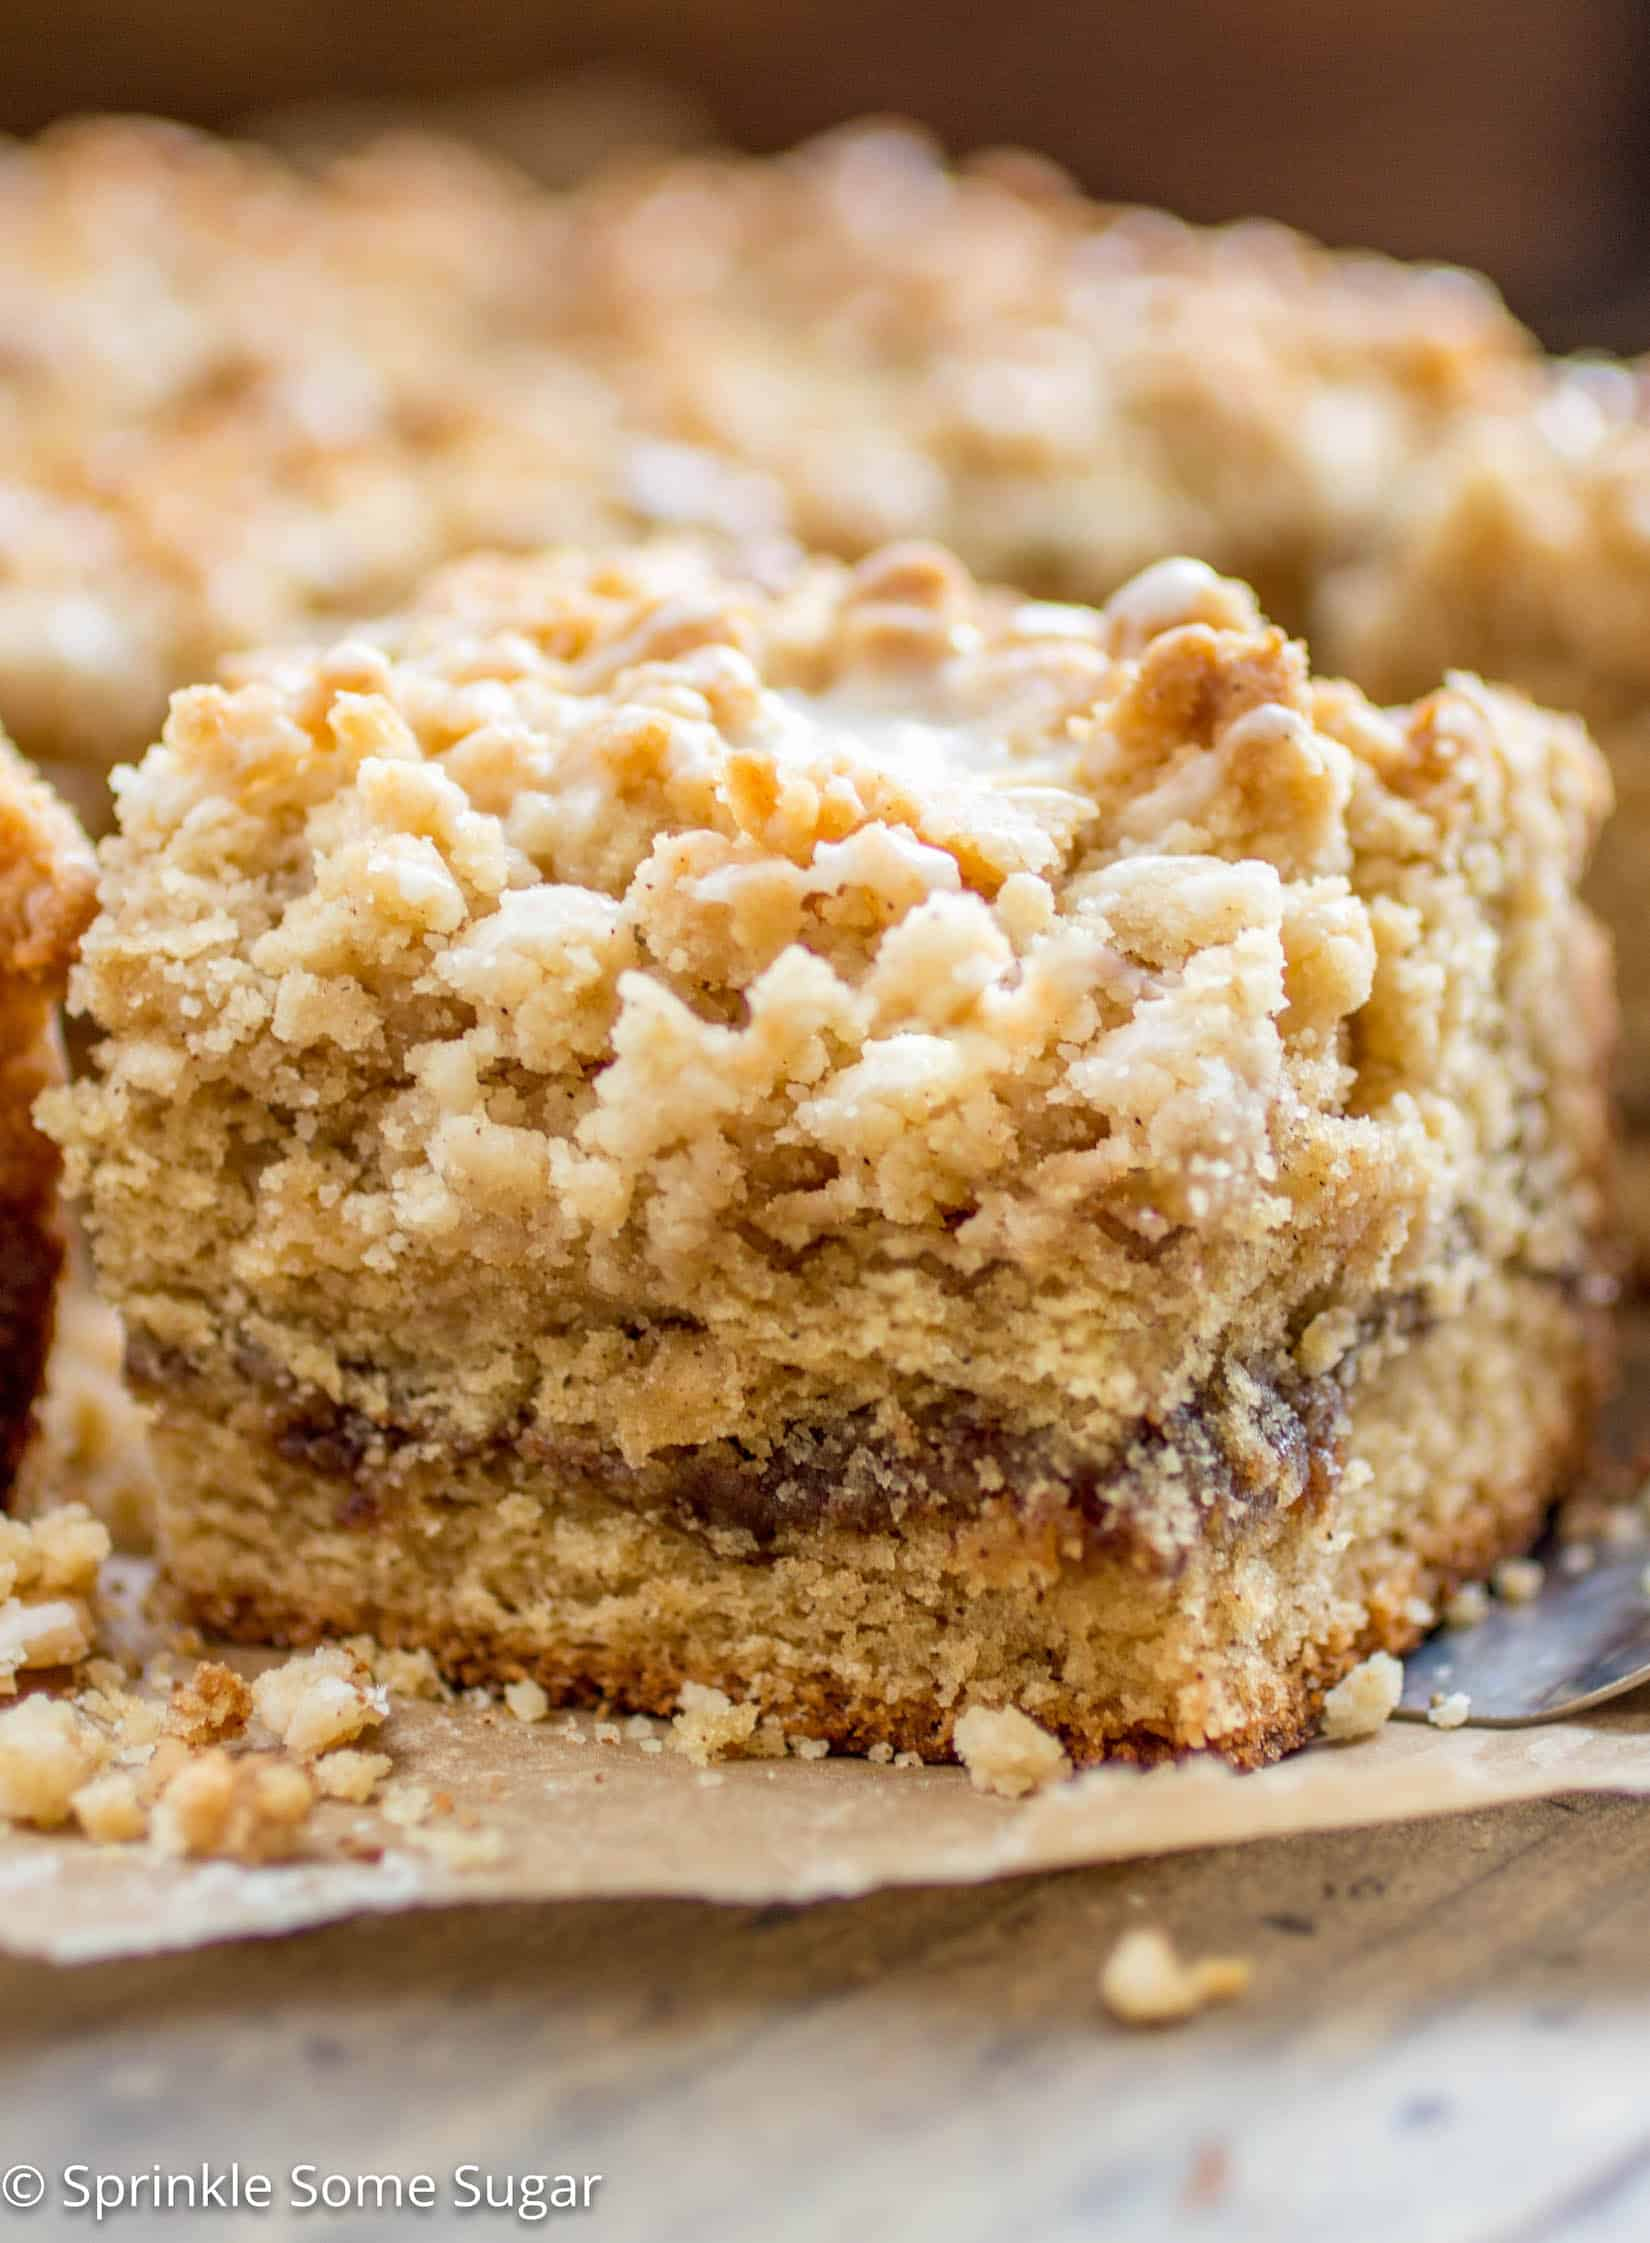 Cinnamon Swirl Coffee Cake - Soft lightly spiced coffee cake is filled with a gooey cinnamon swirl center and topped with a sweet streusel topping + vanilla glaze!